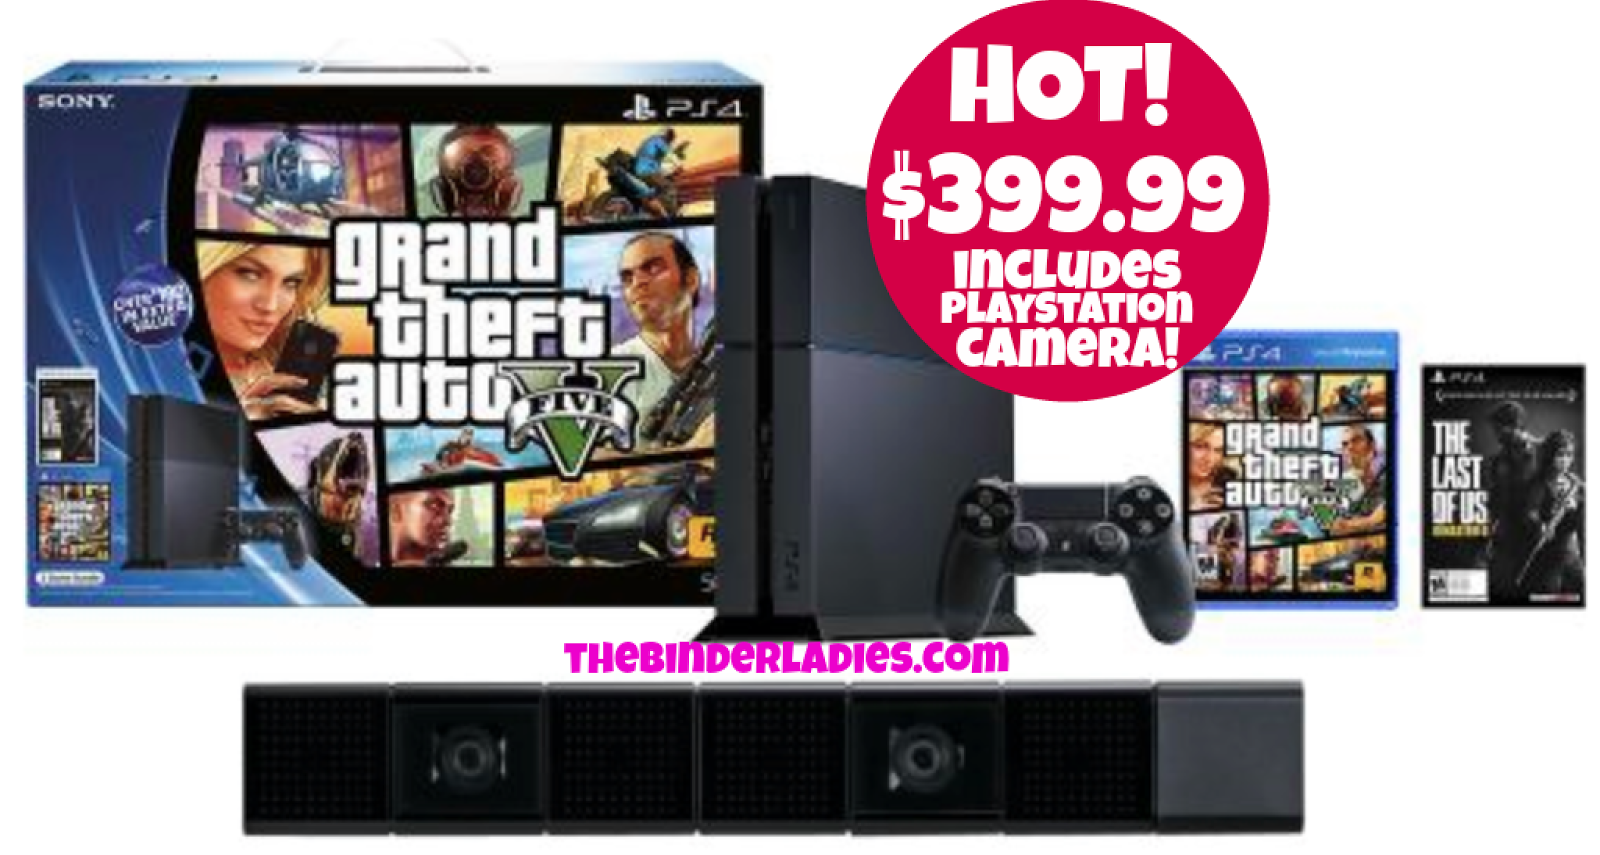 http://www.thebinderladies.com/2014/12/hot-gamestopcom-playstation-4-system.html